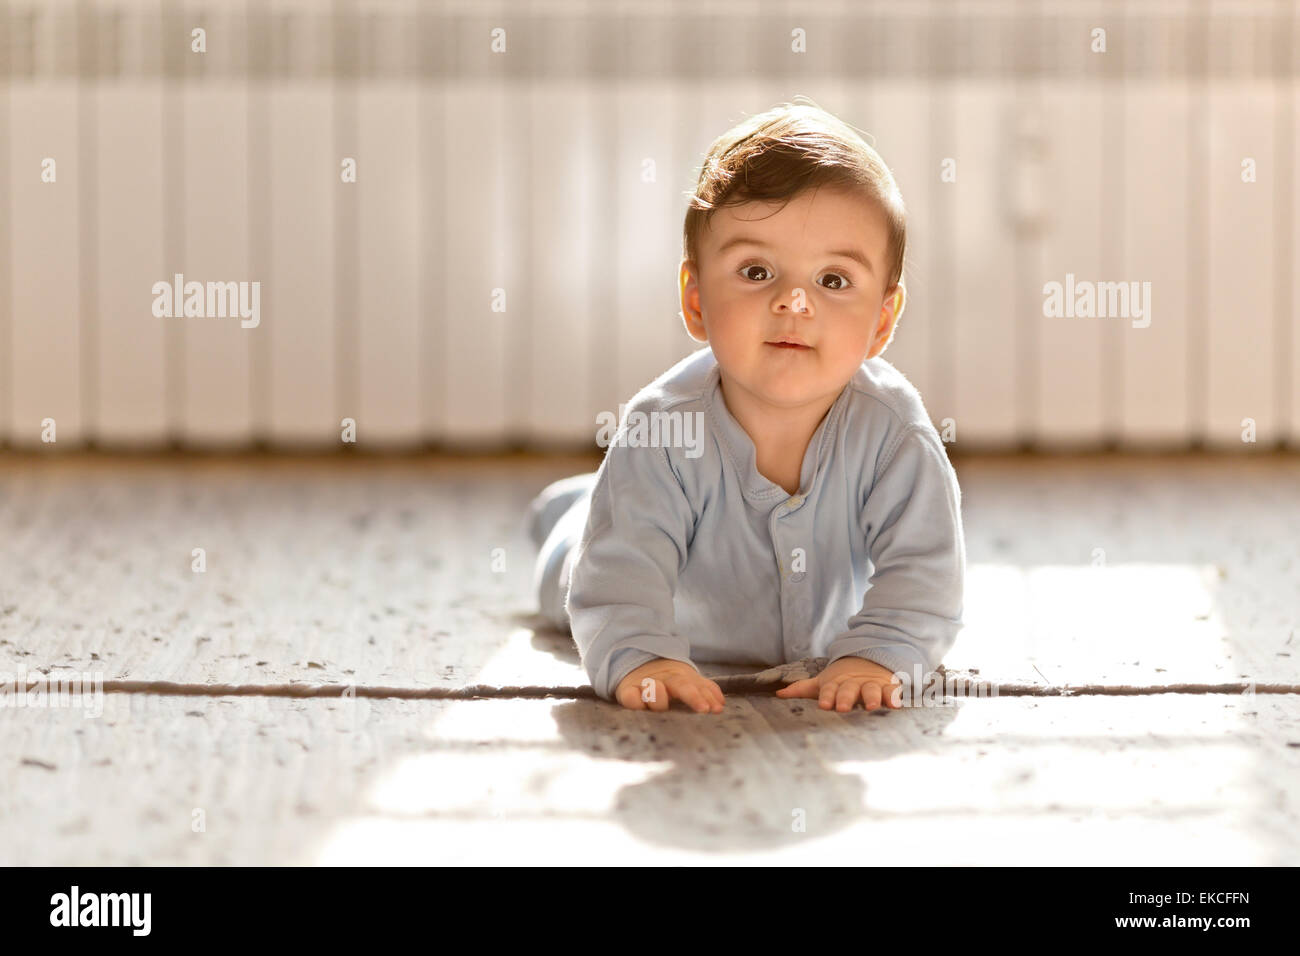 Baby Boy looking at camera Photo Stock